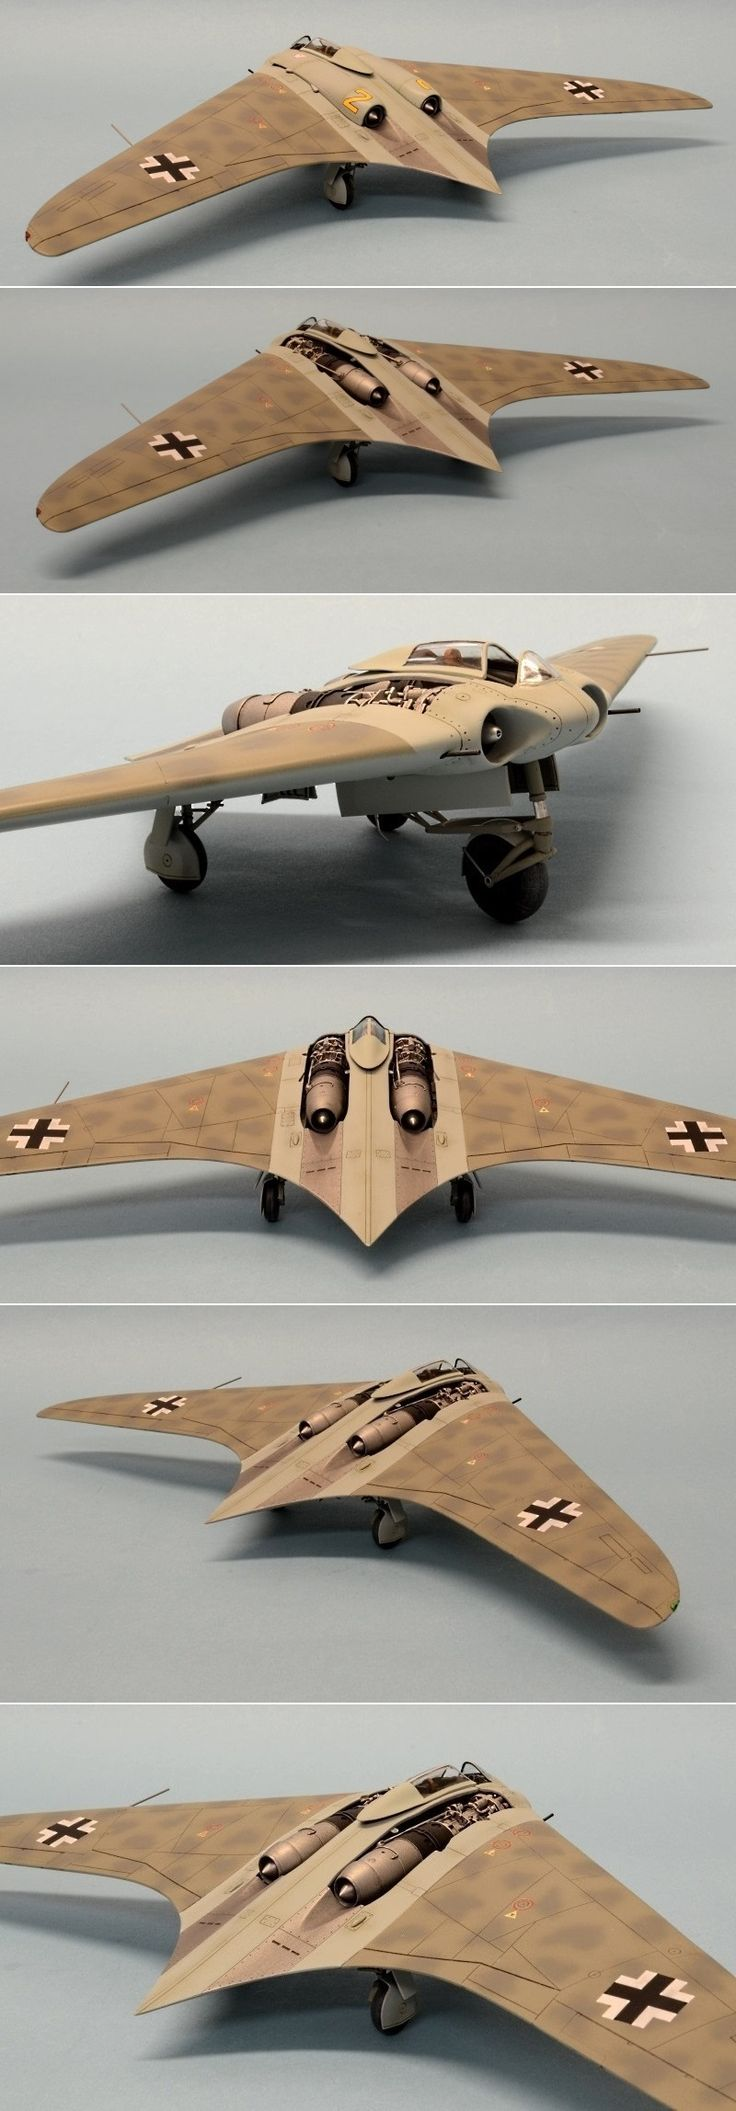 Dragon 1/48 Horten Ho-229 flying wing.   http://www.network54.com/Forum/47751/message/1439982694/Horten+Ho-229